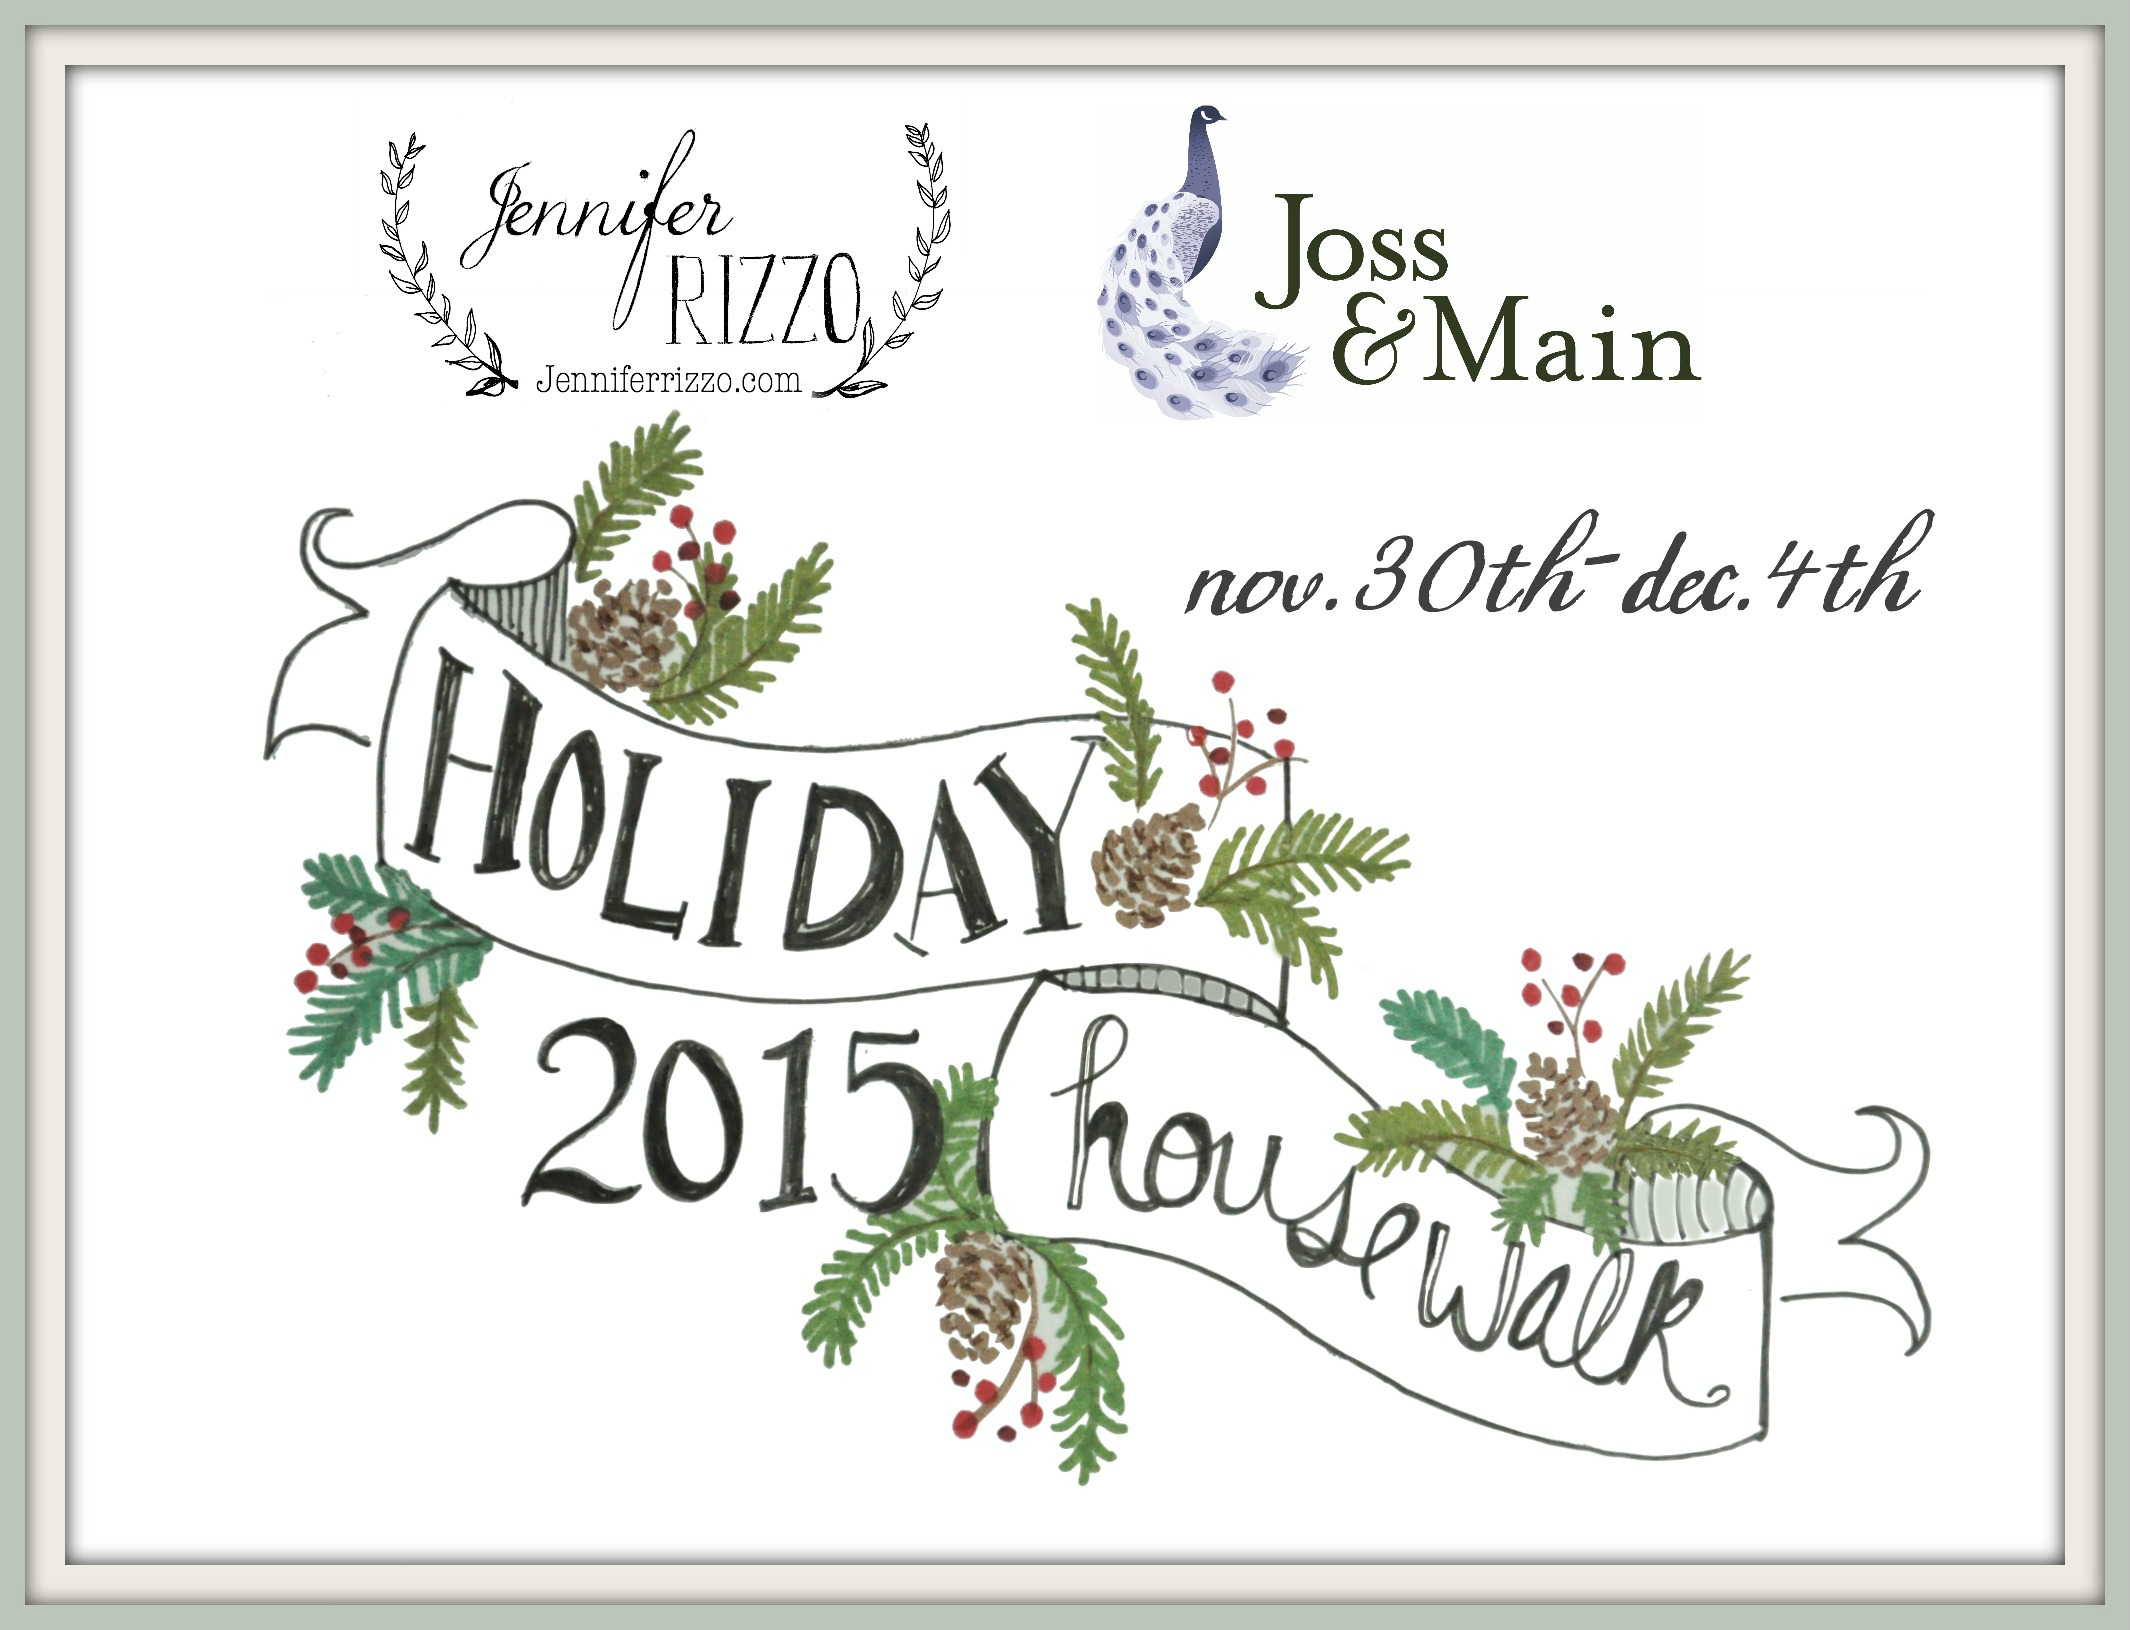 Holiday House Walk 2015